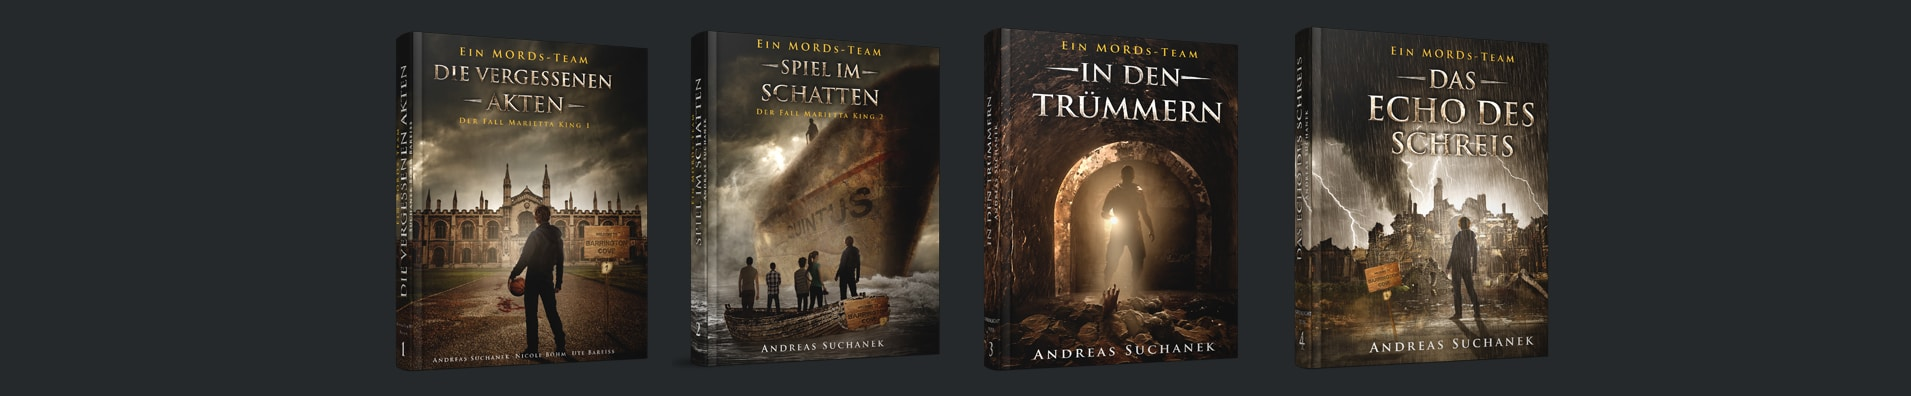 Ein MORDs-Team - Die Hardcover - www.einmordsteam.de